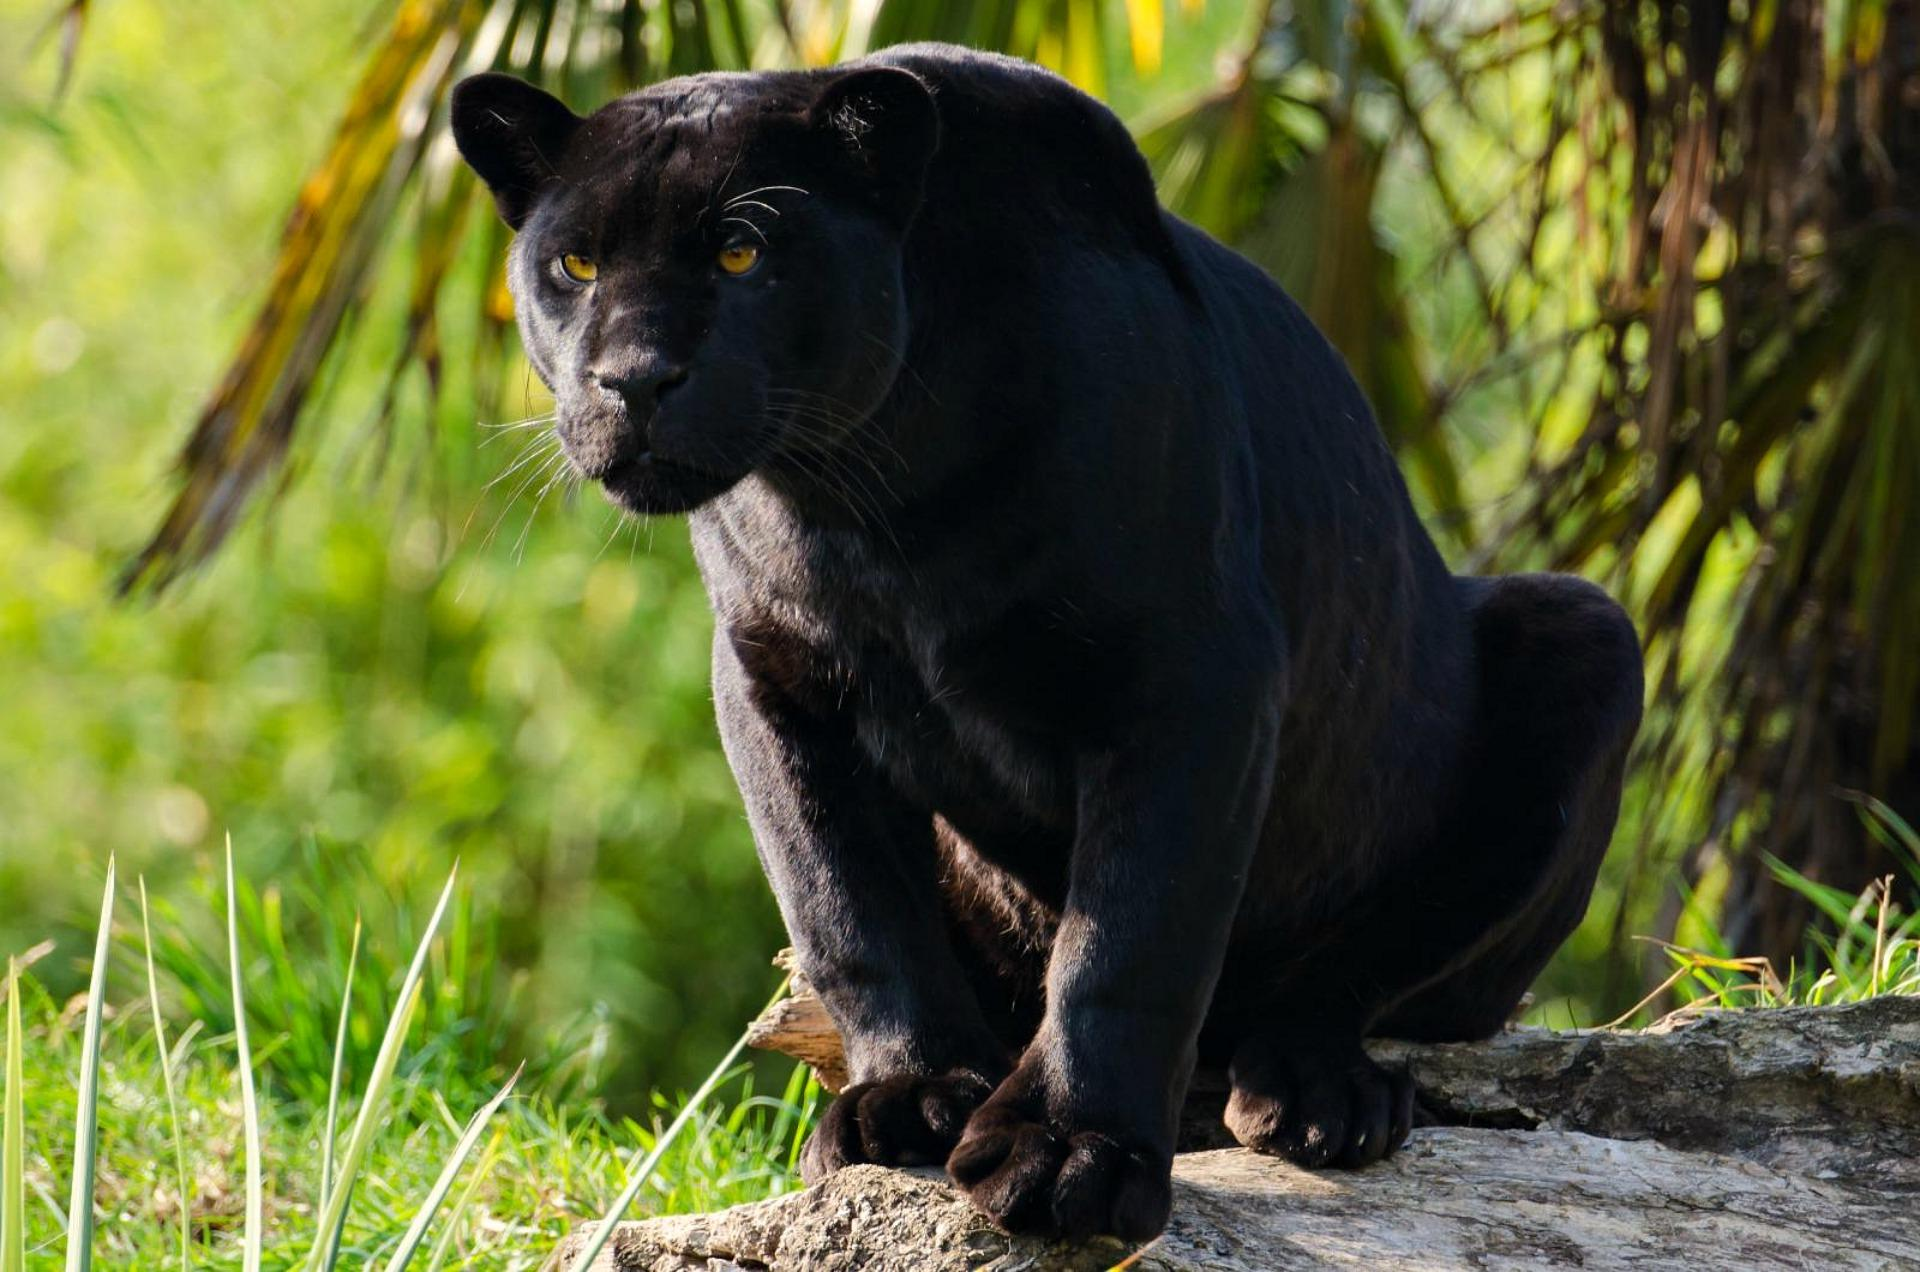 Black Panther Jungle Cat Black Jaguar Animal Wallpaper Black Jaguar Hd 2134475 Hd Wallpaper Backgrounds Download